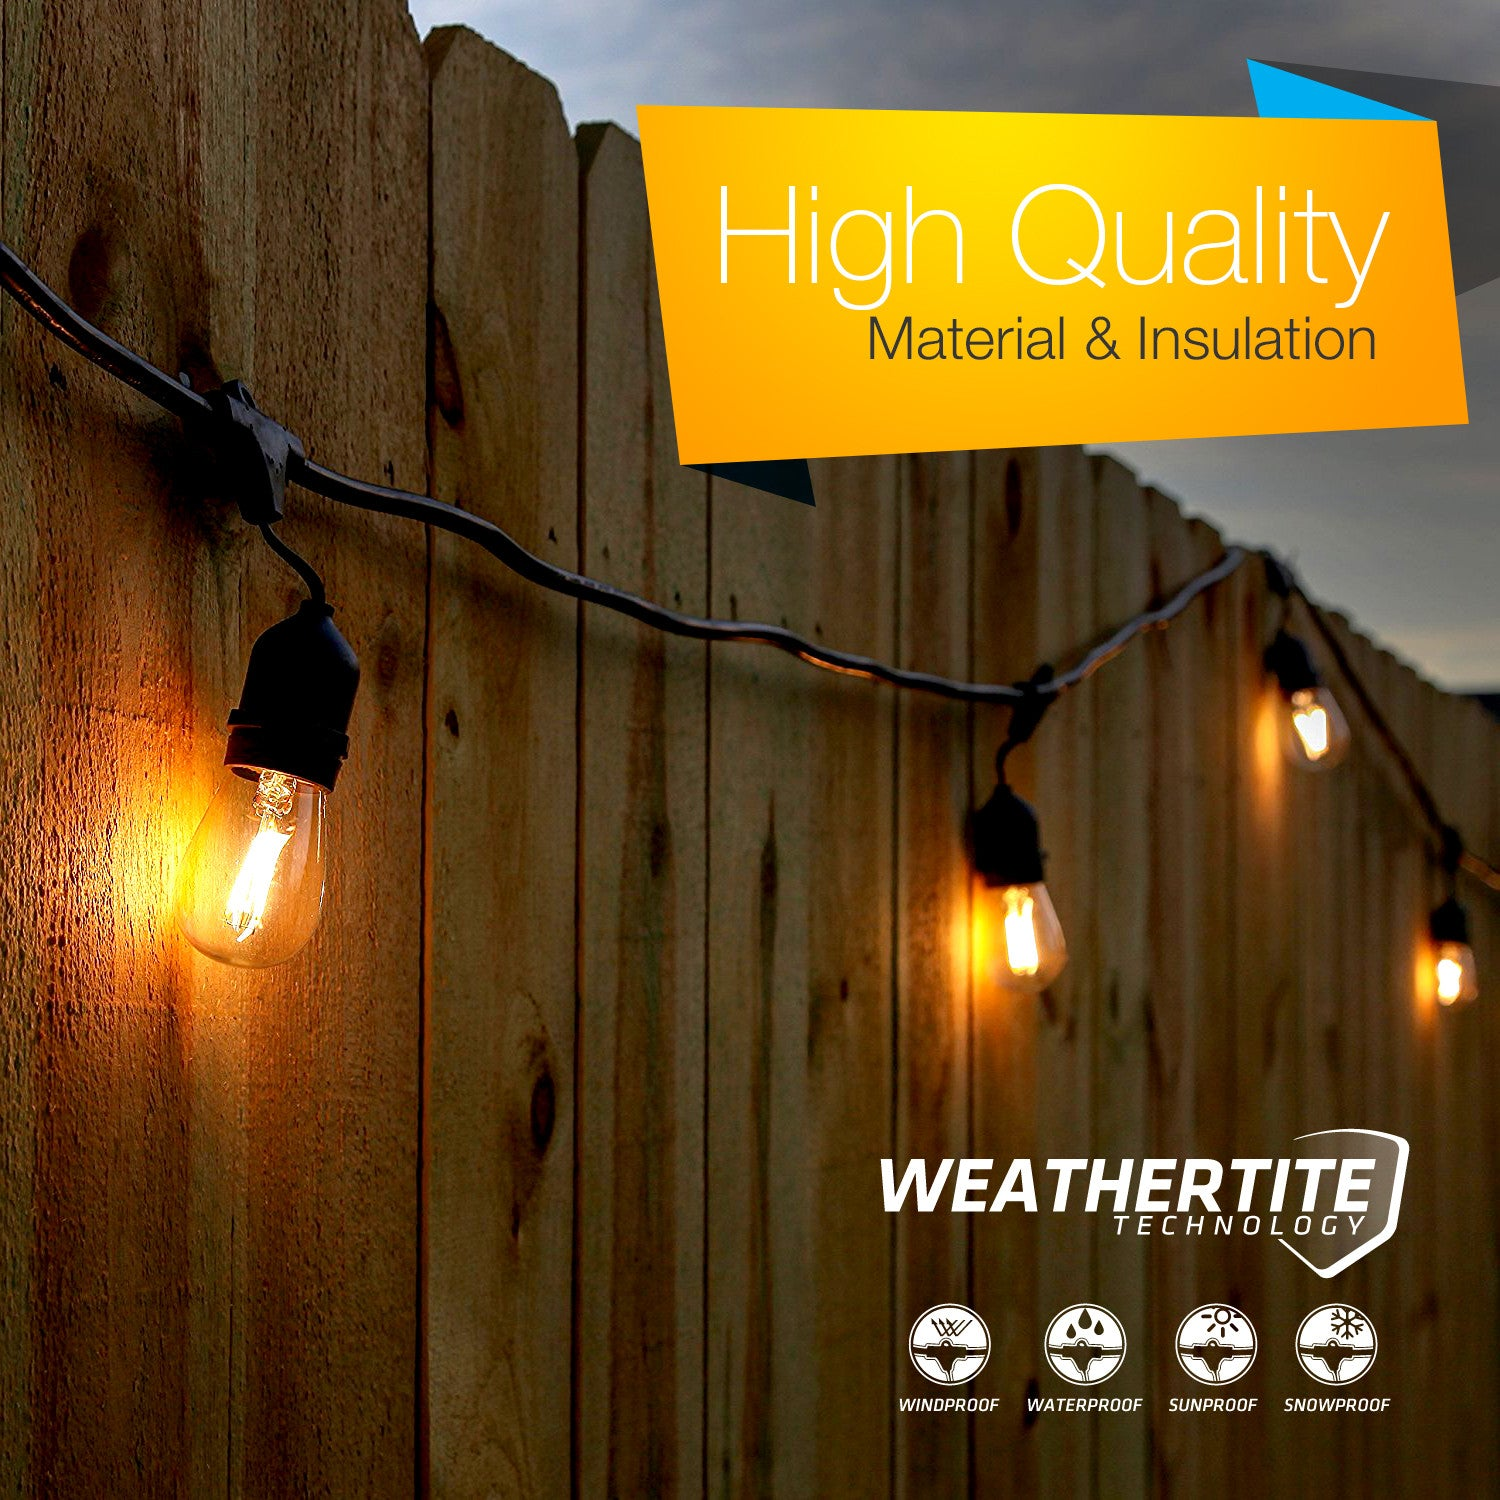 Good Brightech Store | Brightech Ambience Pro LED Outdoor Weatherproof  Commercial Grade String Lights, WeatherTite Technology U2013 2 Watt Dimmable LED  Bulbs ...